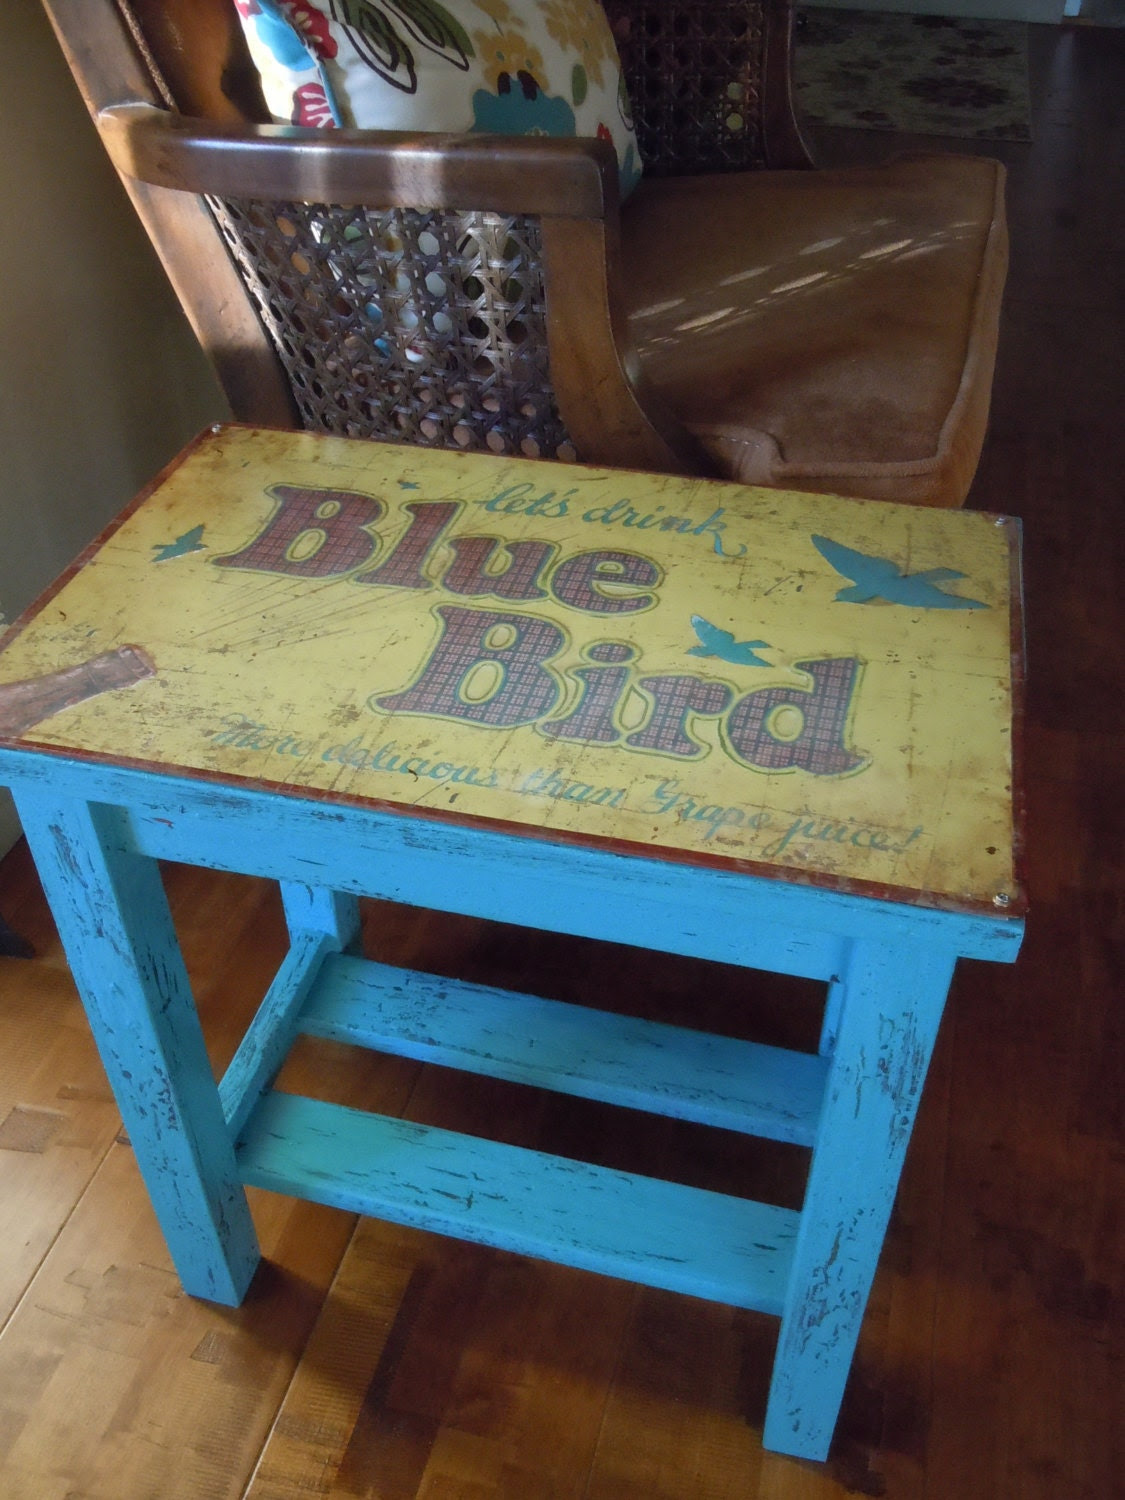 Popular items for outdoor furniture on Etsy